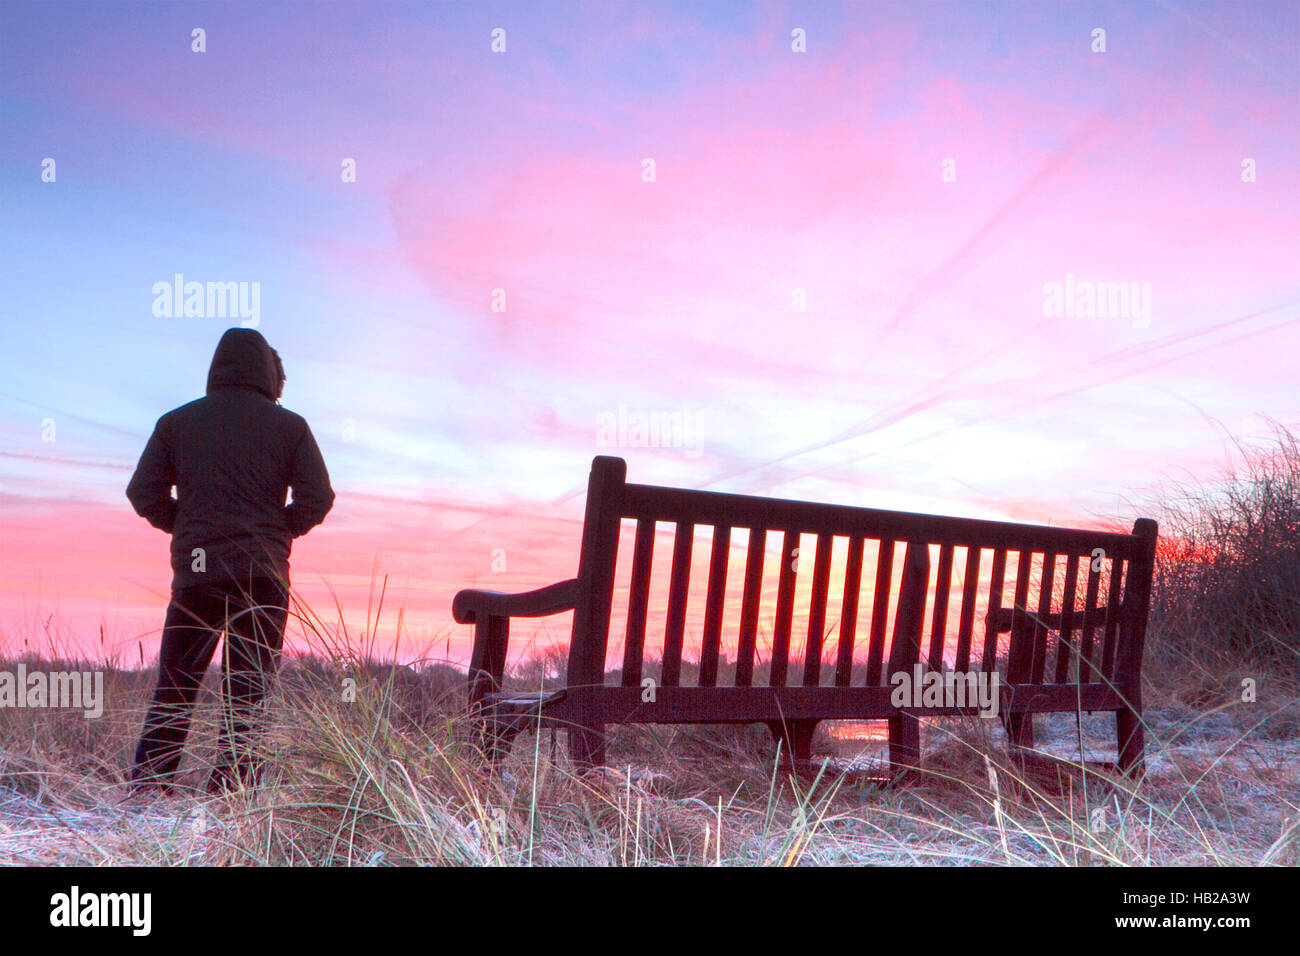 Southport, Merseyside, UK. 5th Dec, 2016.  After a cold & frosty night, a birdwatcher looks over the RSPB wetlands - Stock Image